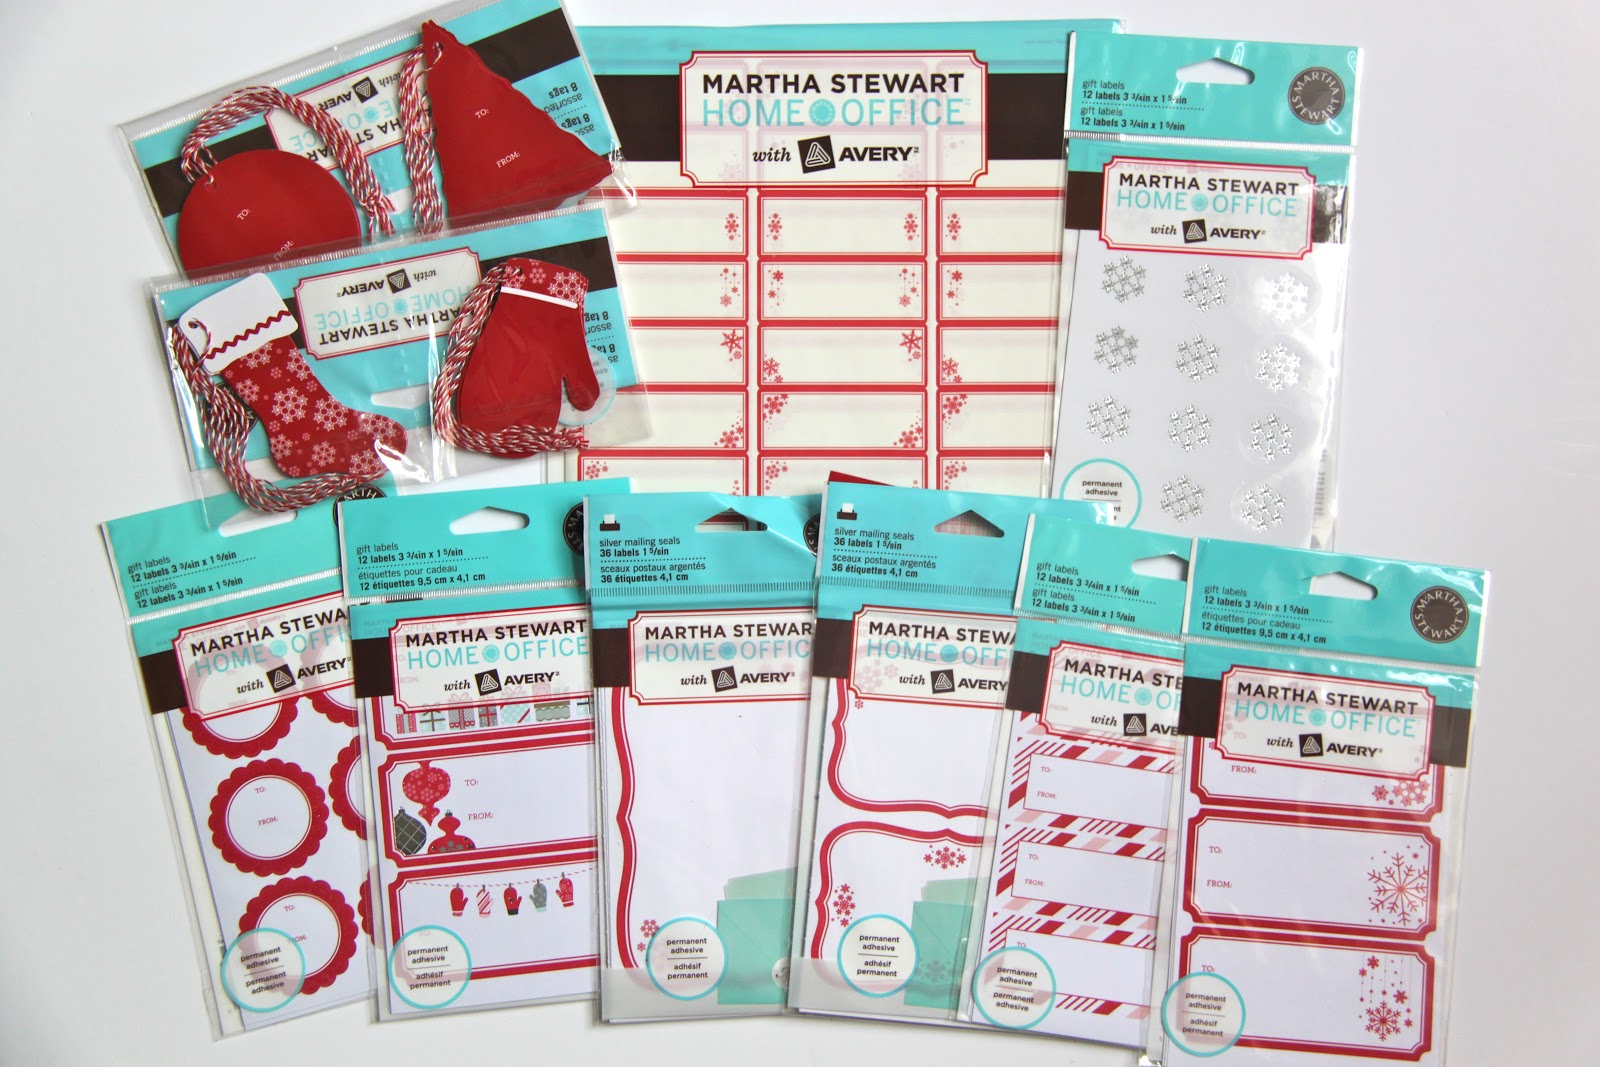 Diy christmas cards and kraft paper envelopes tutorial smashed the martha stewart home office with avery line sold exclusively at staples also has mailing labels gift tags and pretty holiday stickers that would negle Choice Image